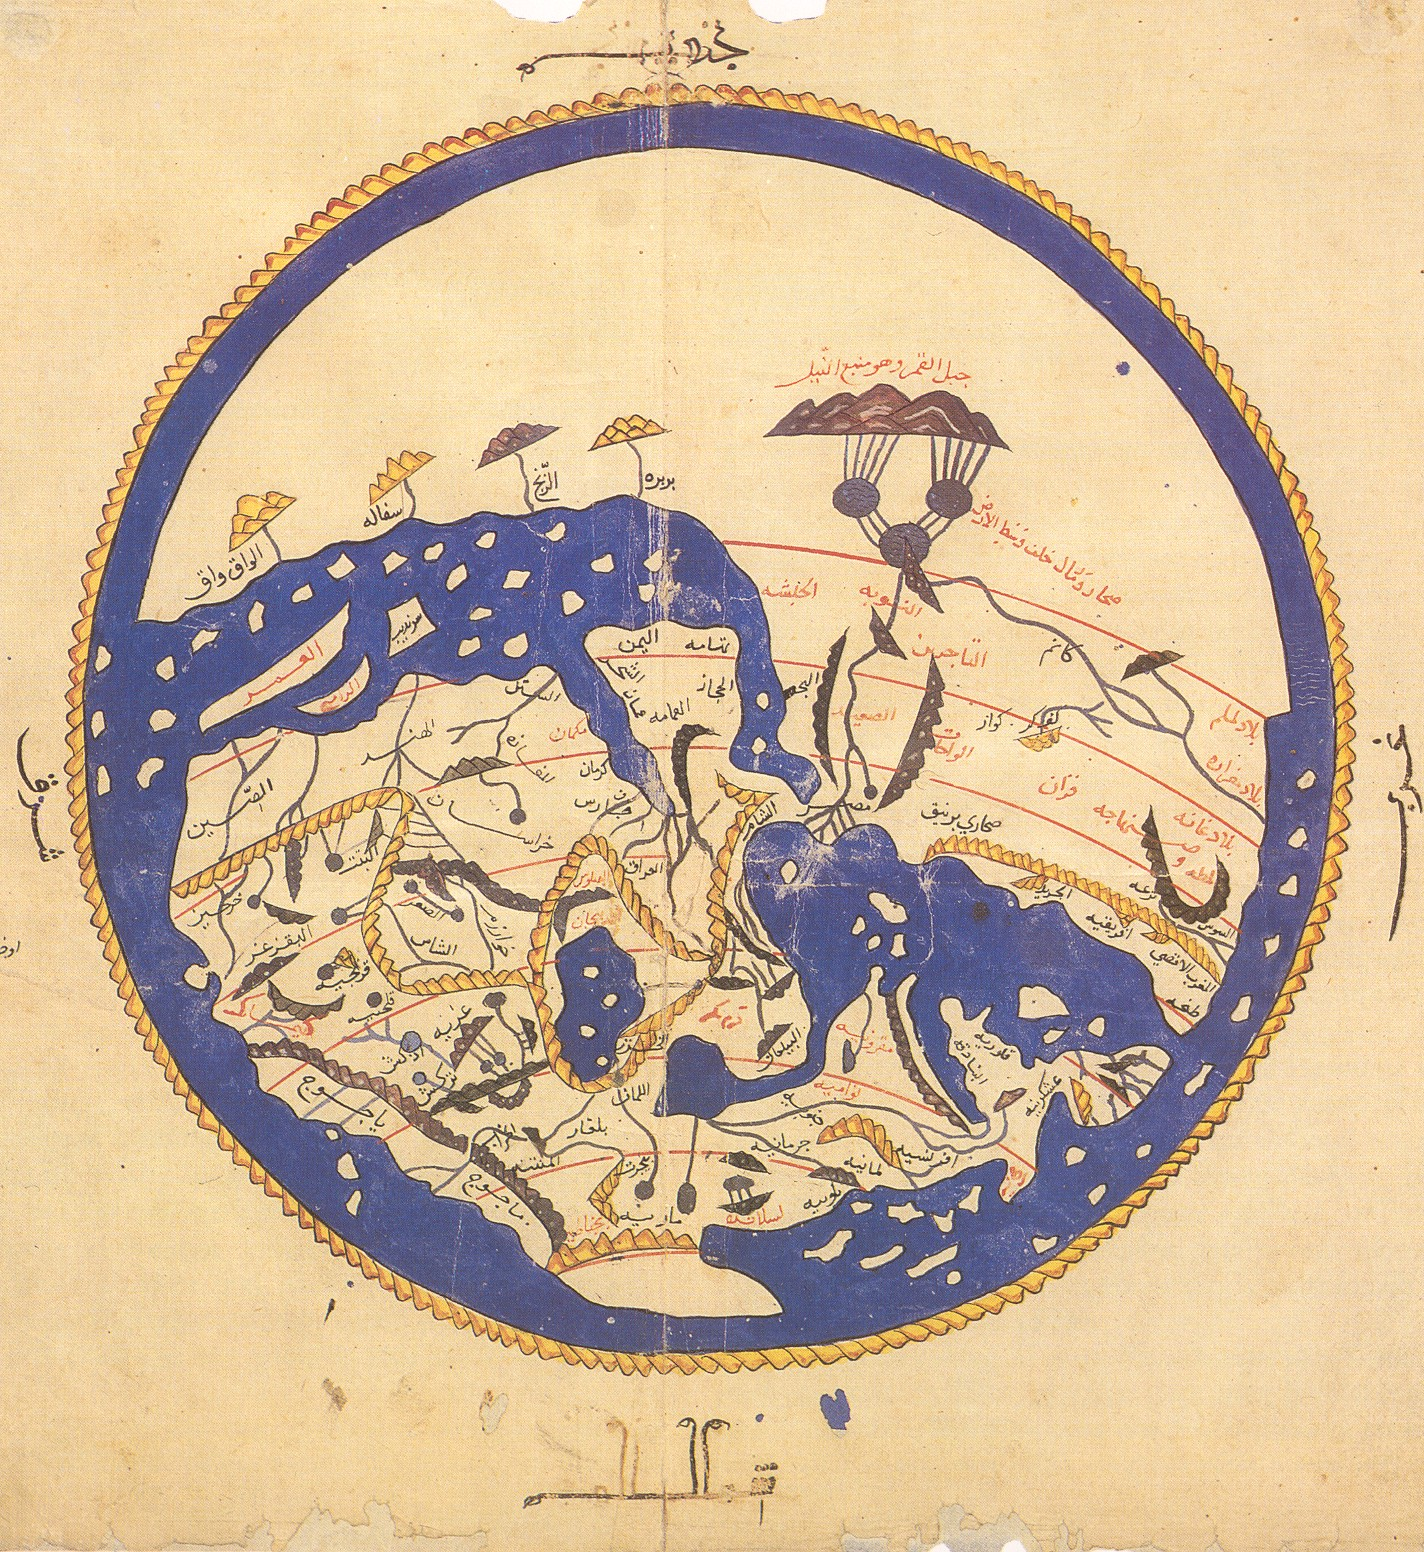 The overview map from the Bodleian MS of al-Idrisi's Geography, from Wikimedia Commons (much larger version linked beneath)